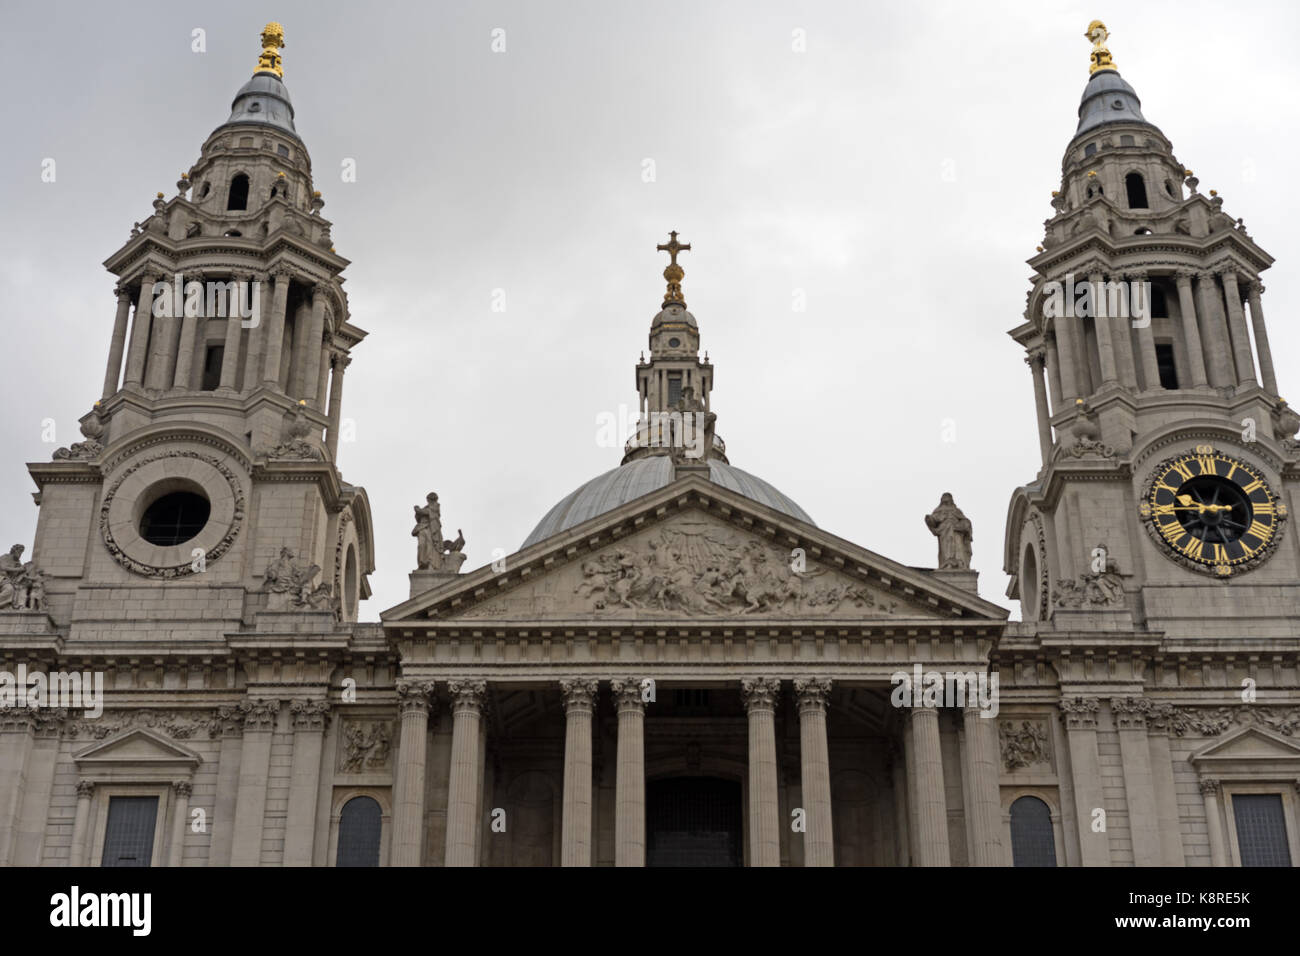 St Paul's Cathedral - Stock Image